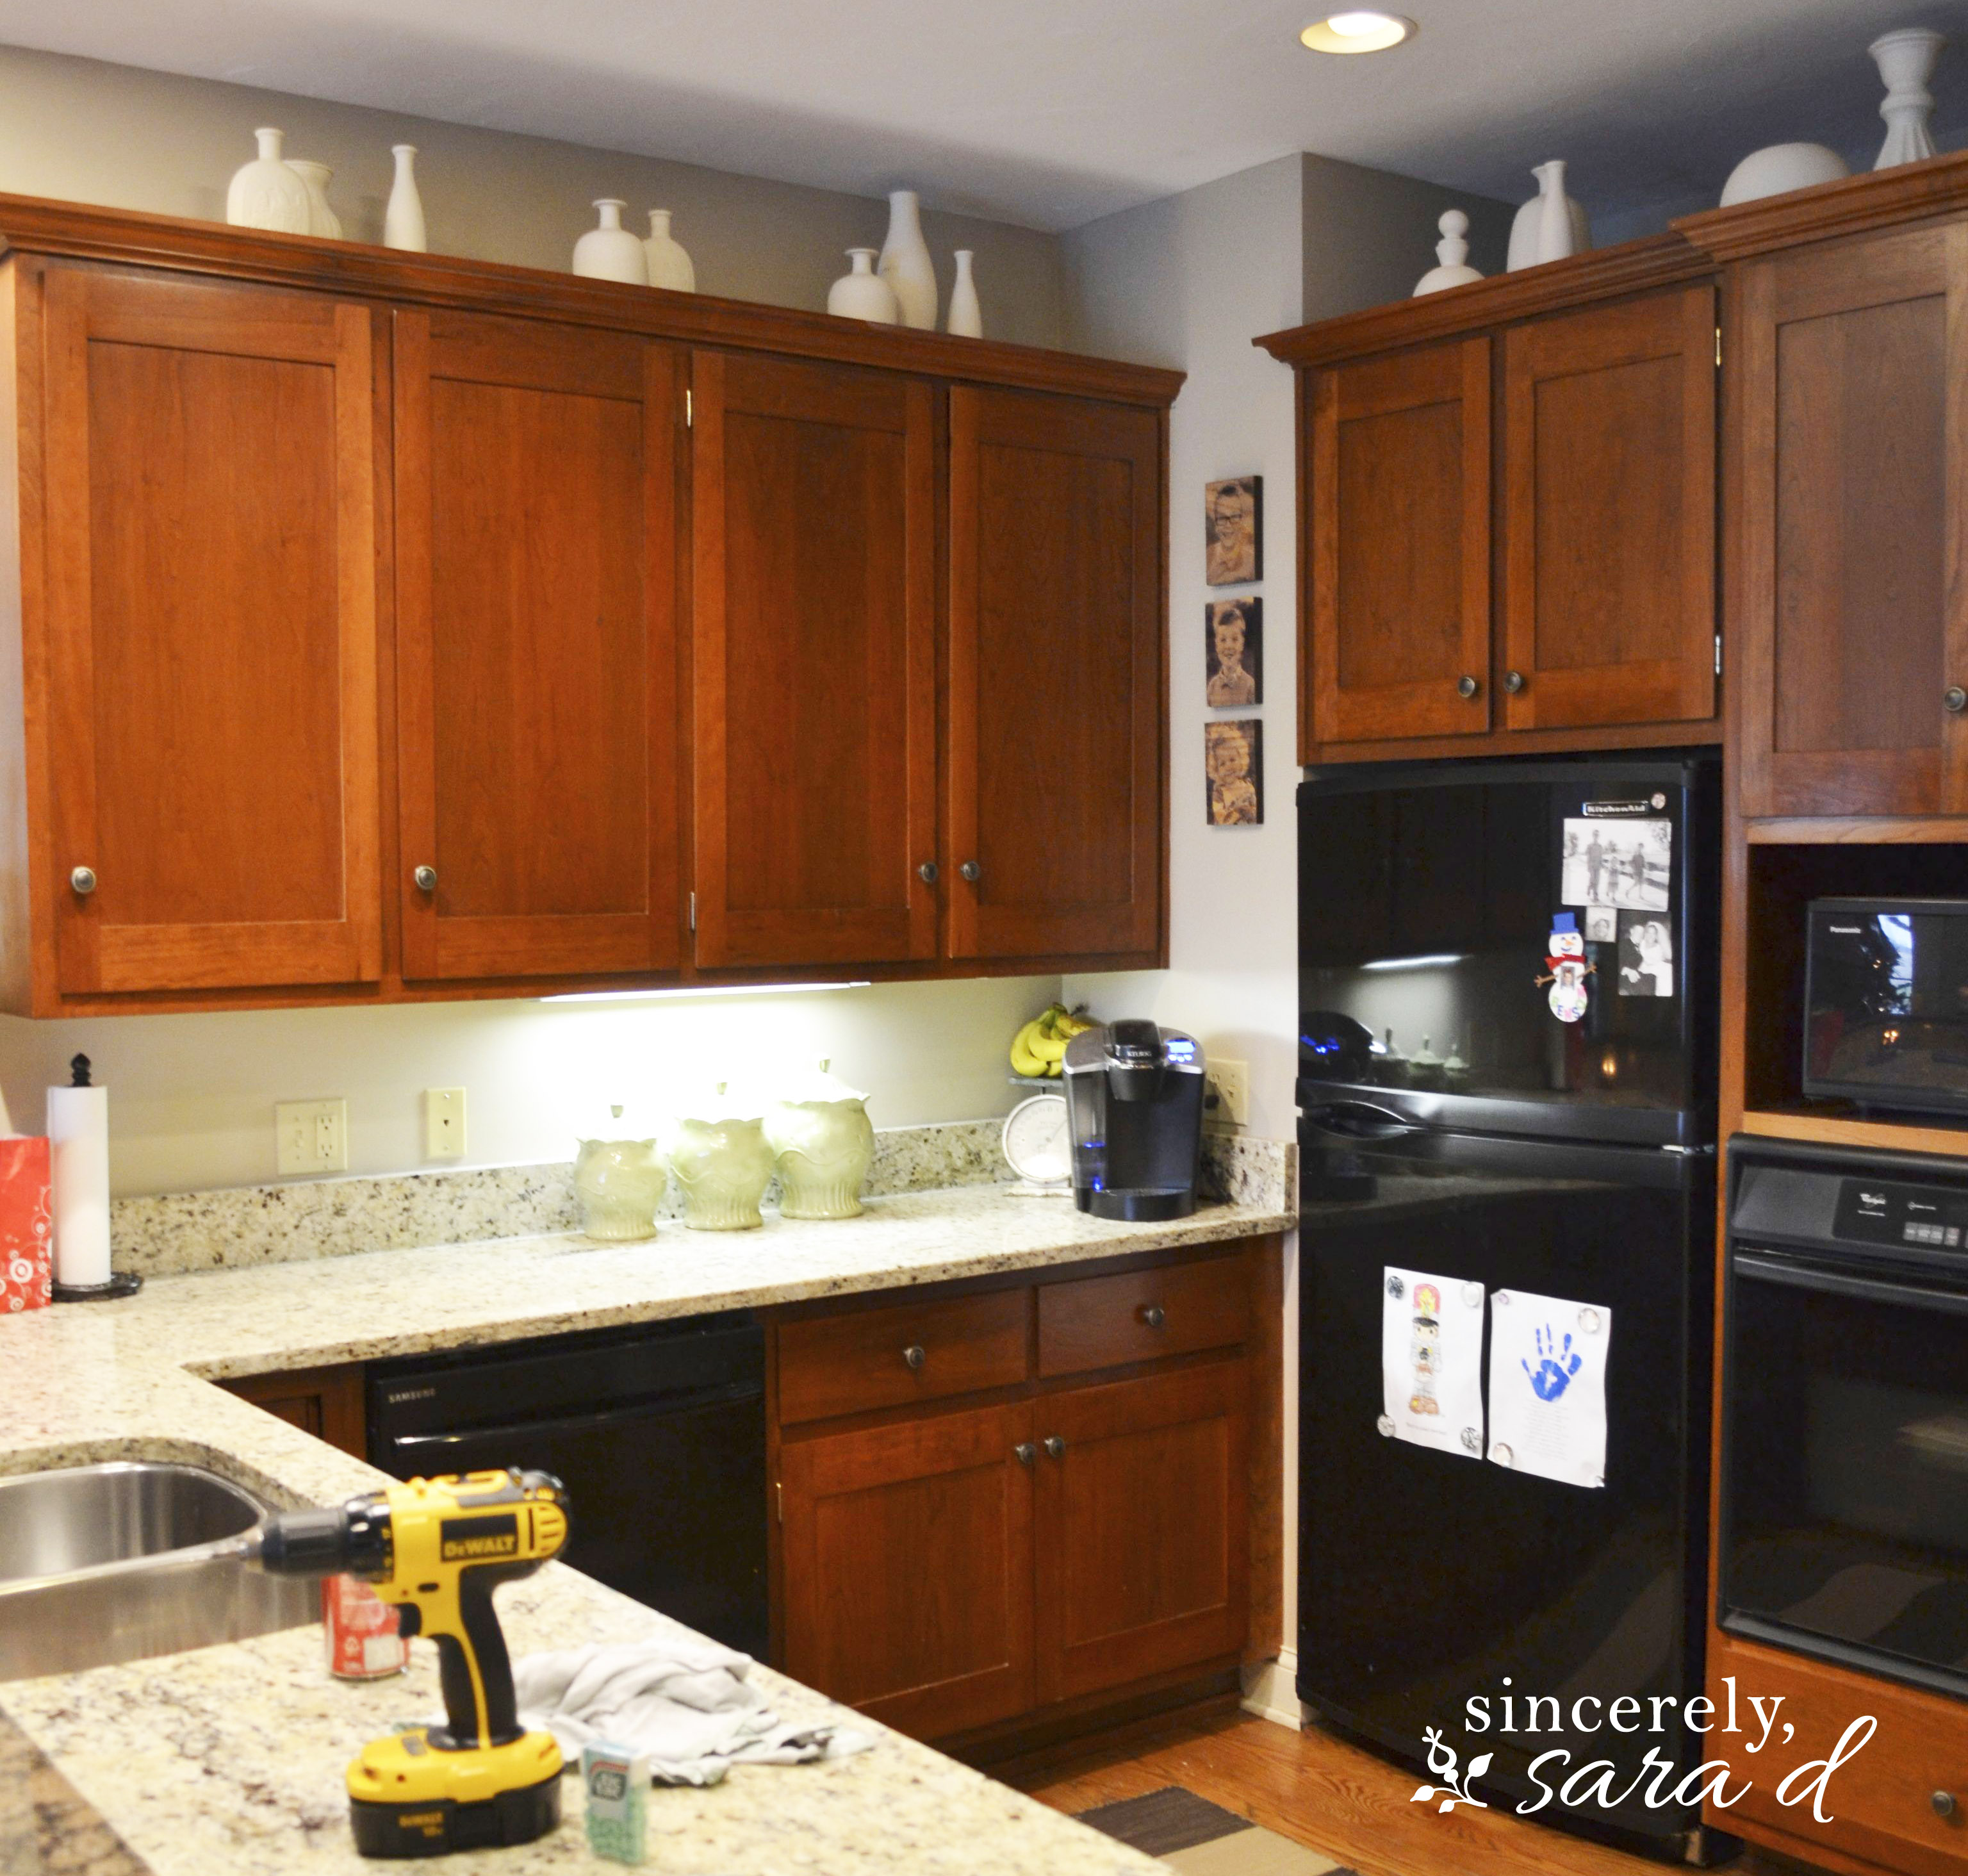 Chalk Paint Kitchen Cabinets Painting Cabinets With Chalk Paint Sincerely Sara D